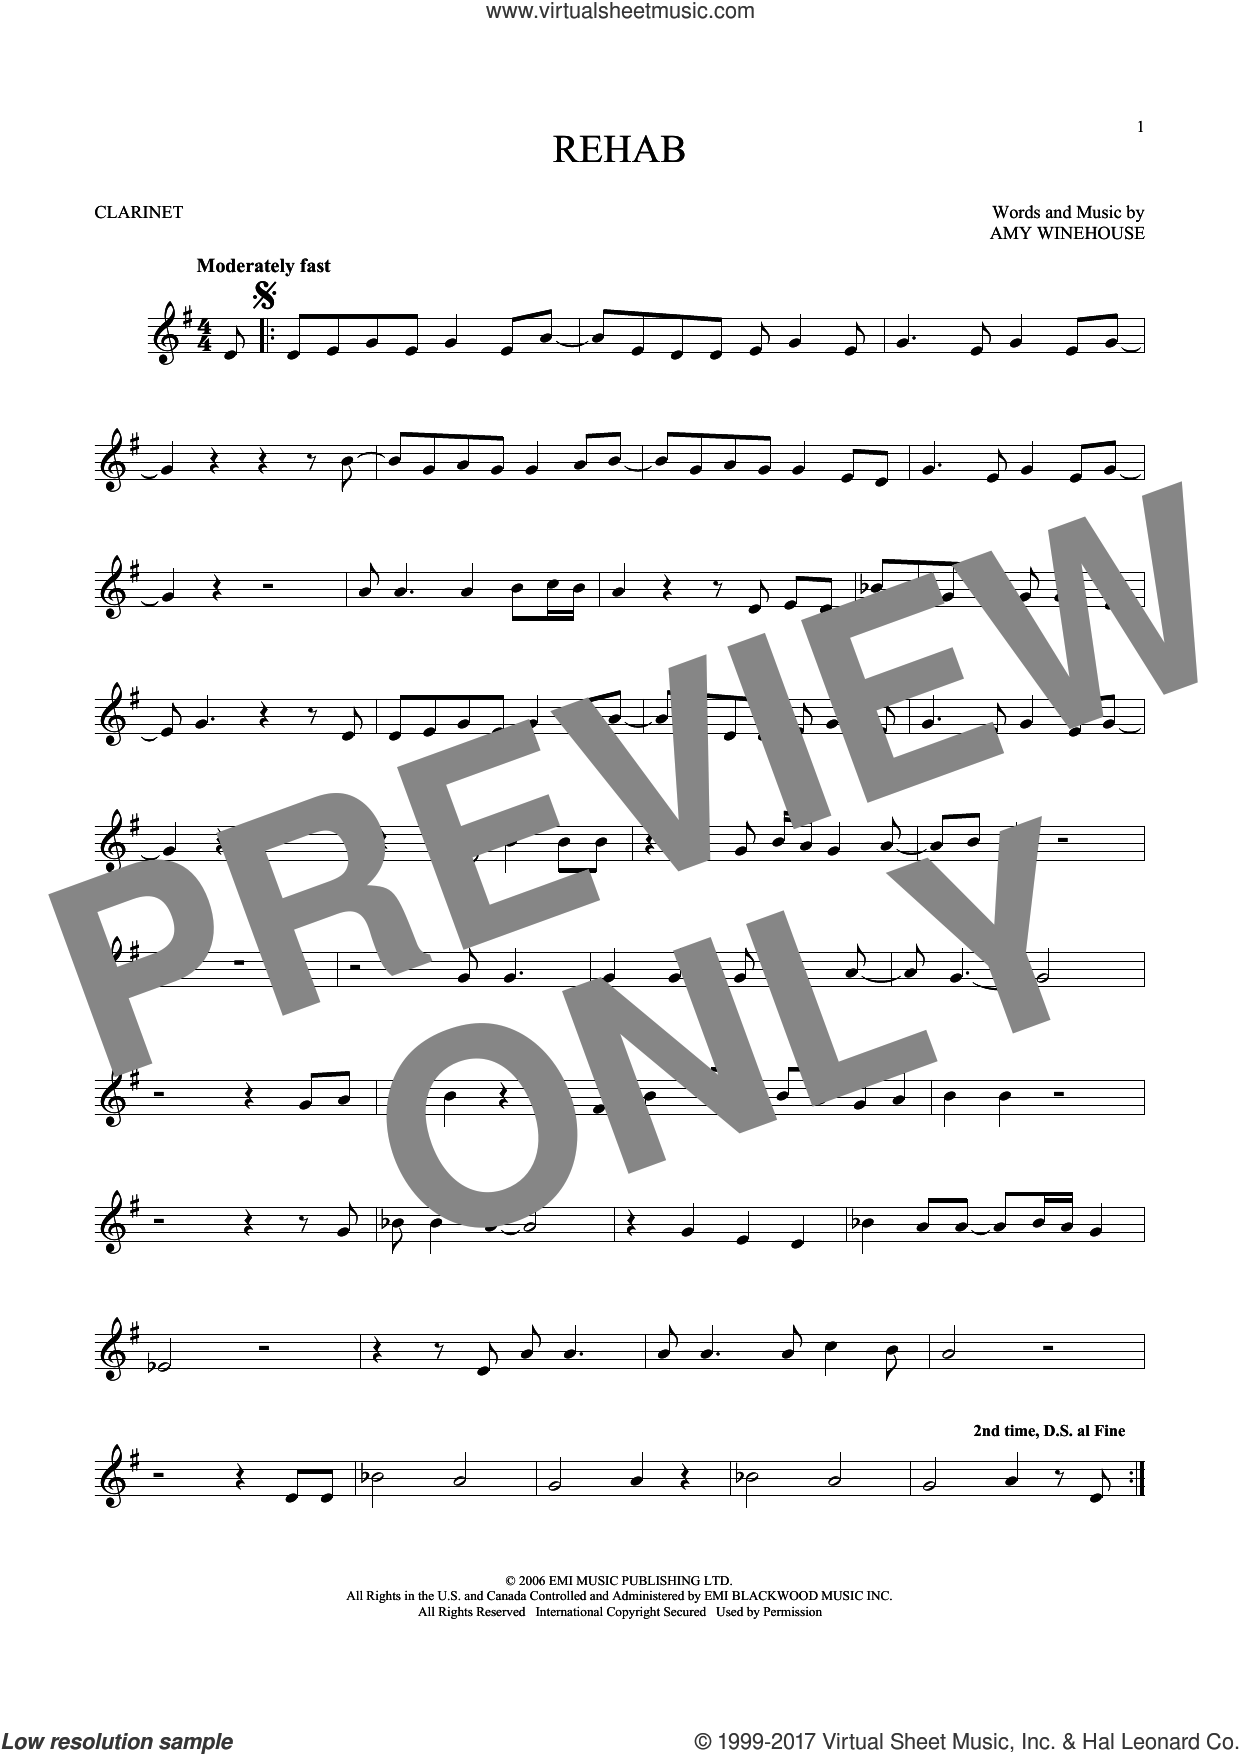 Rehab sheet music for clarinet solo by Amy Winehouse, intermediate